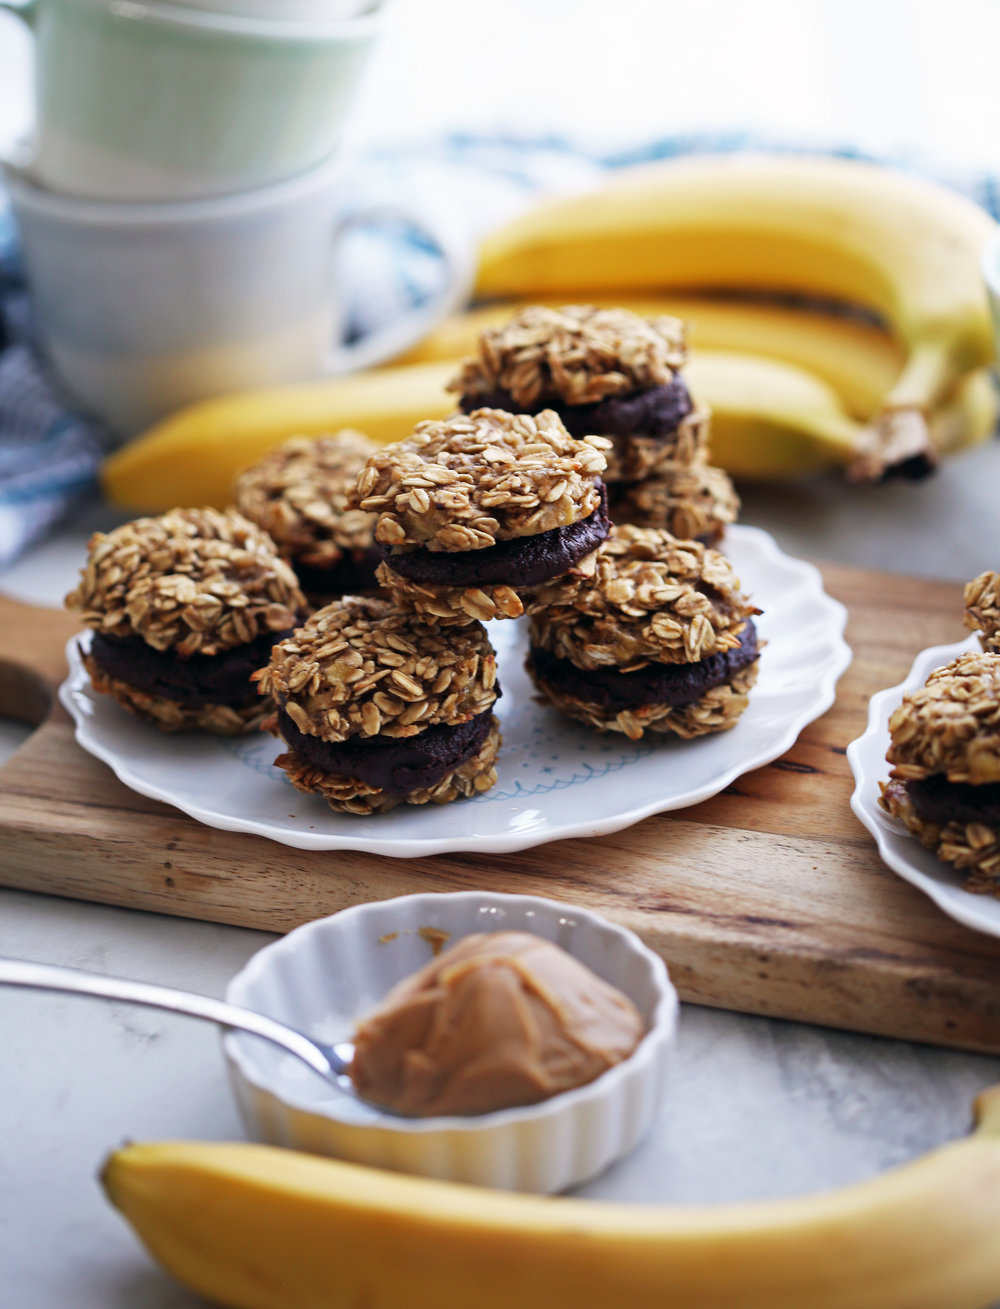 Banana oatmeal sandwich cookies with peanut butter cocoa filling on a white plate.